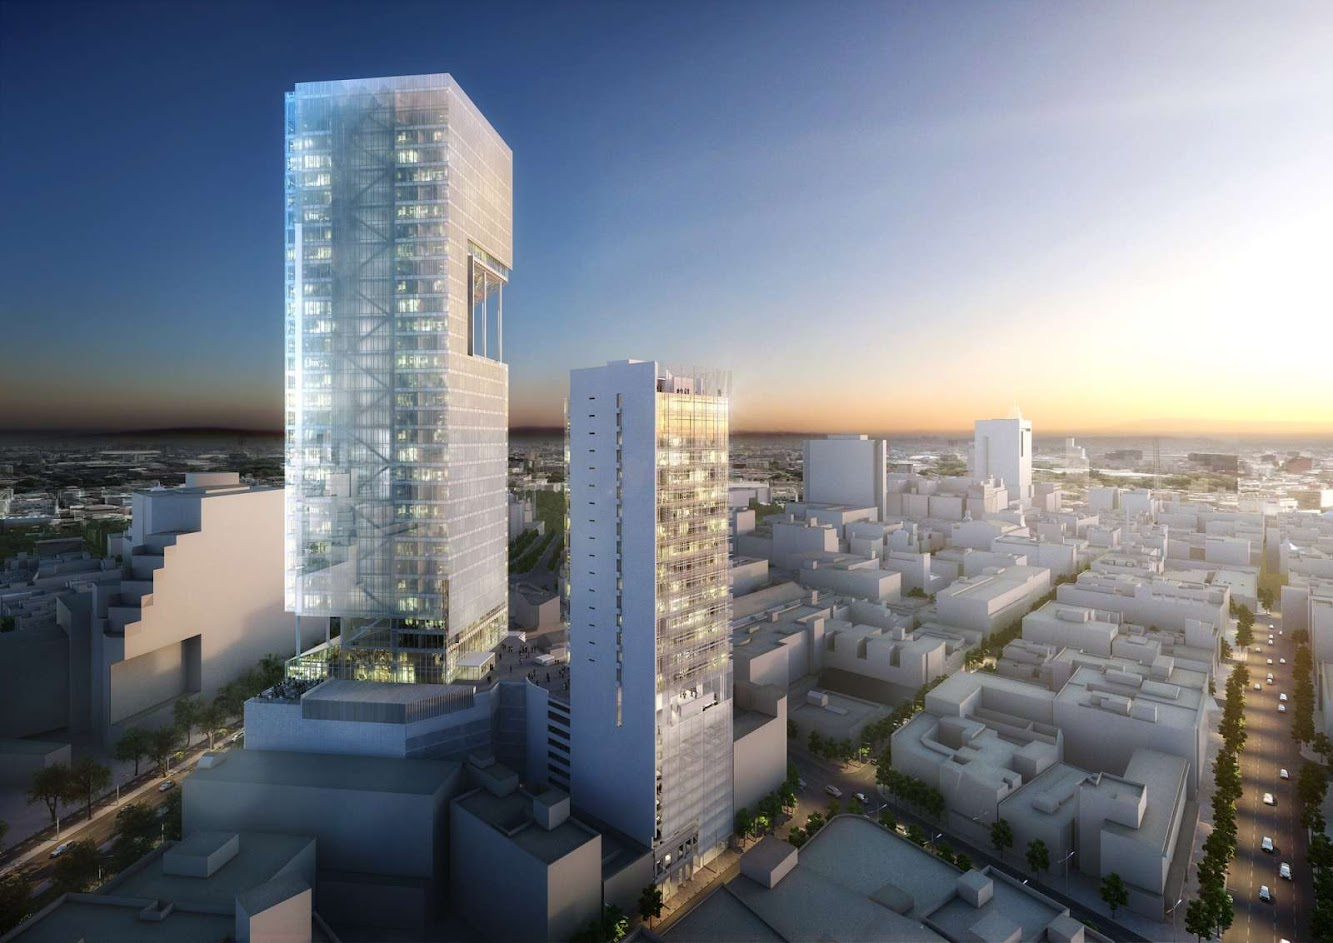 Richard Meier: REFORMA TOWERS by RICHARD MEIER & PARTNERS